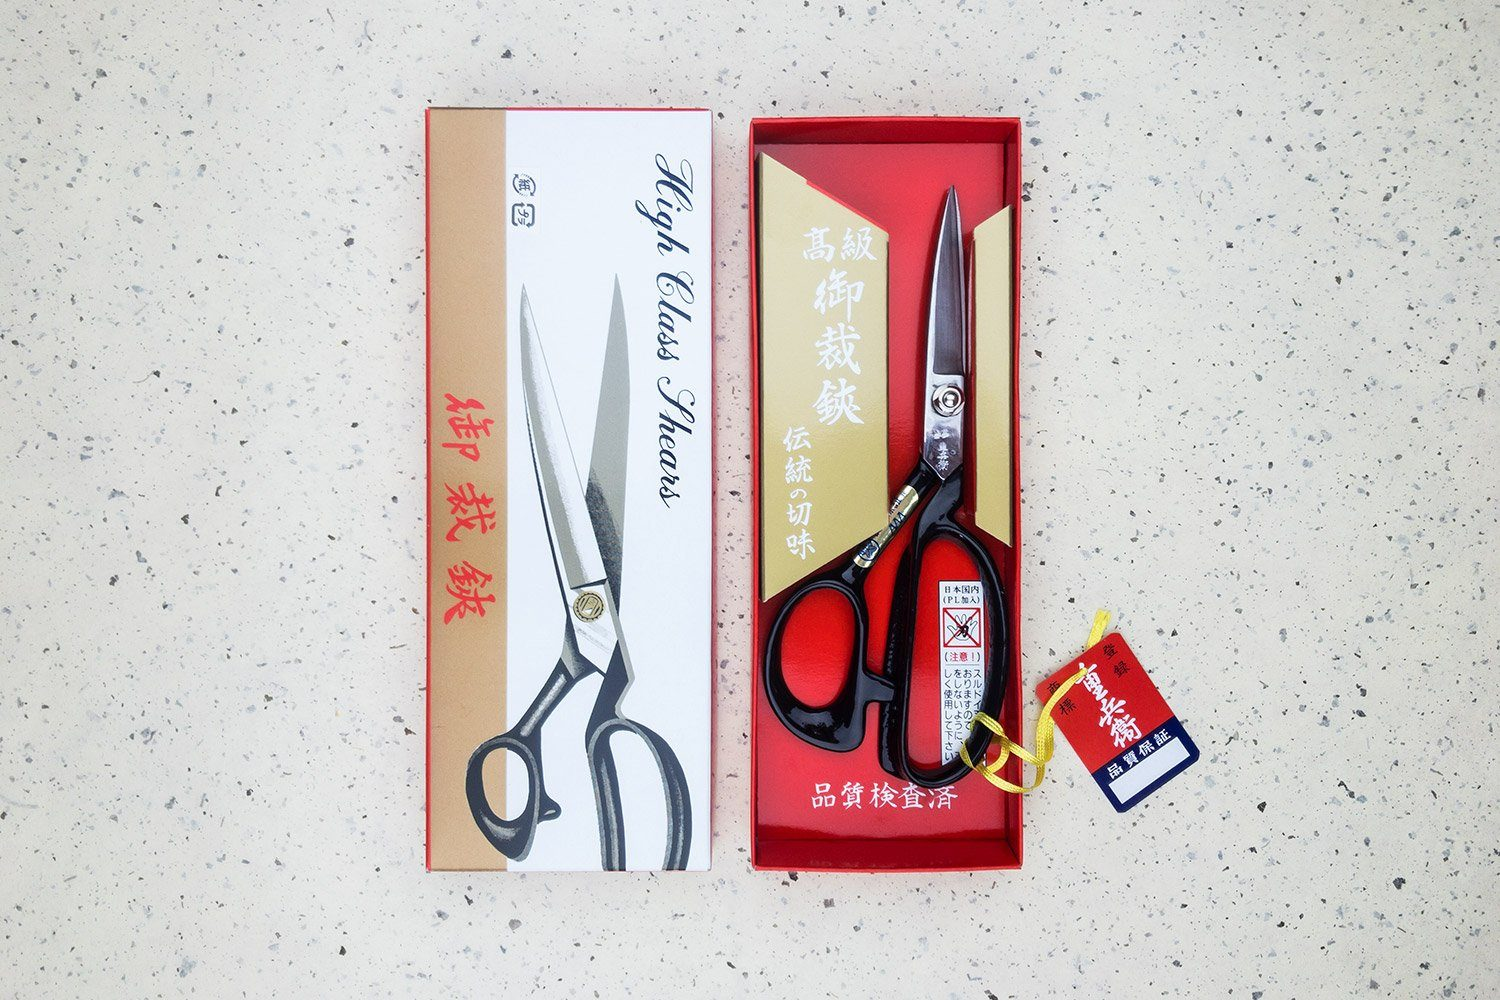 Jubae Fabric Shears 190mm